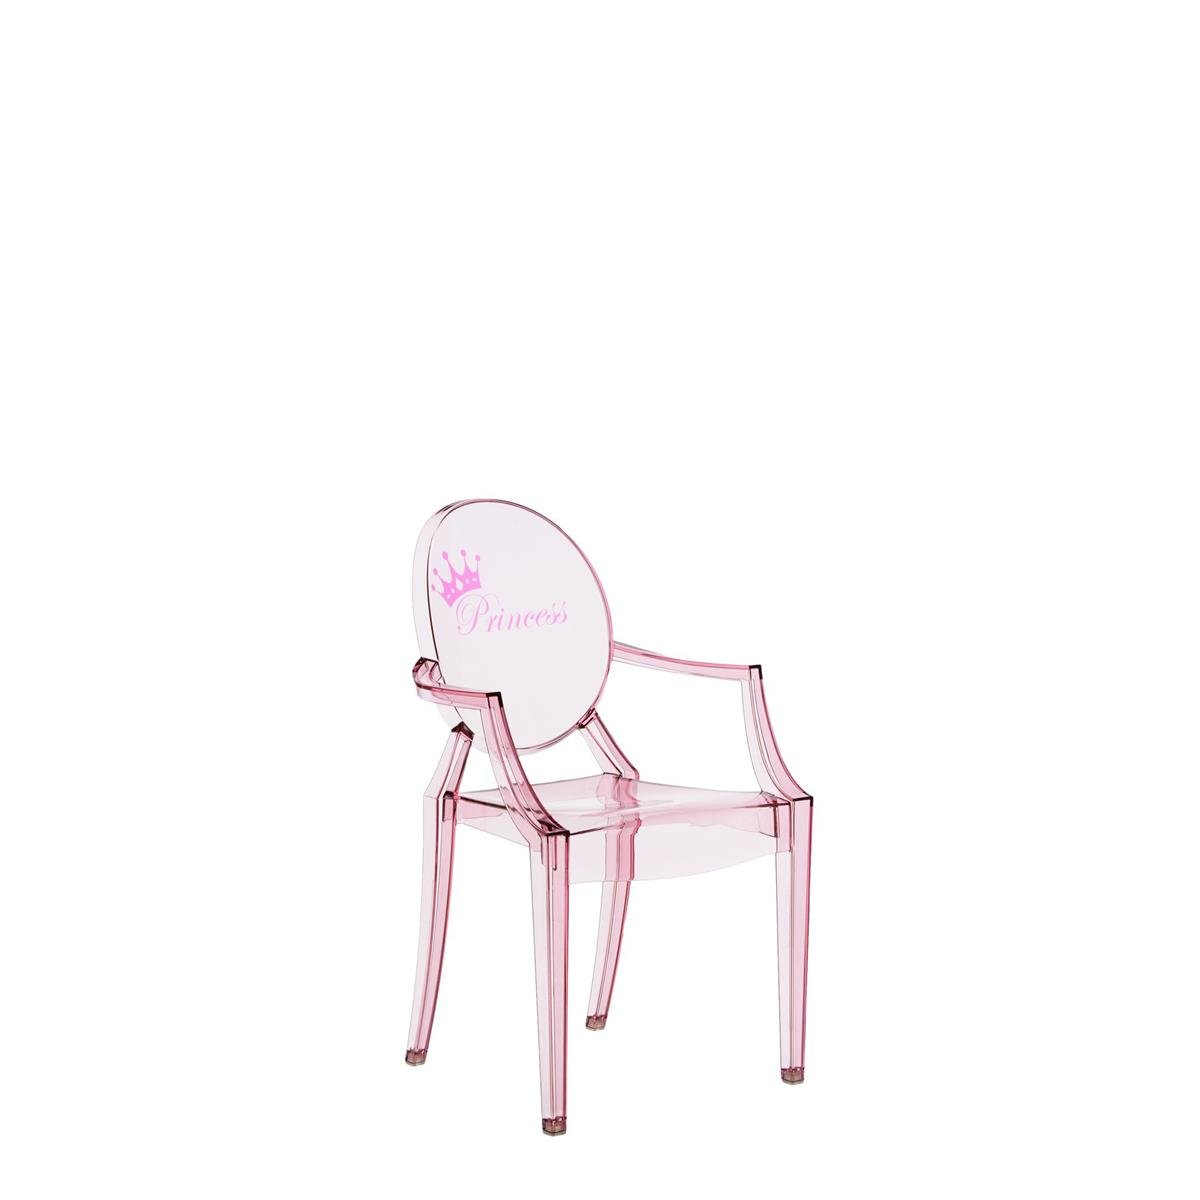 Kartell Lou Ghost Chaise - rose - 2.7 x 37 x 63 cm